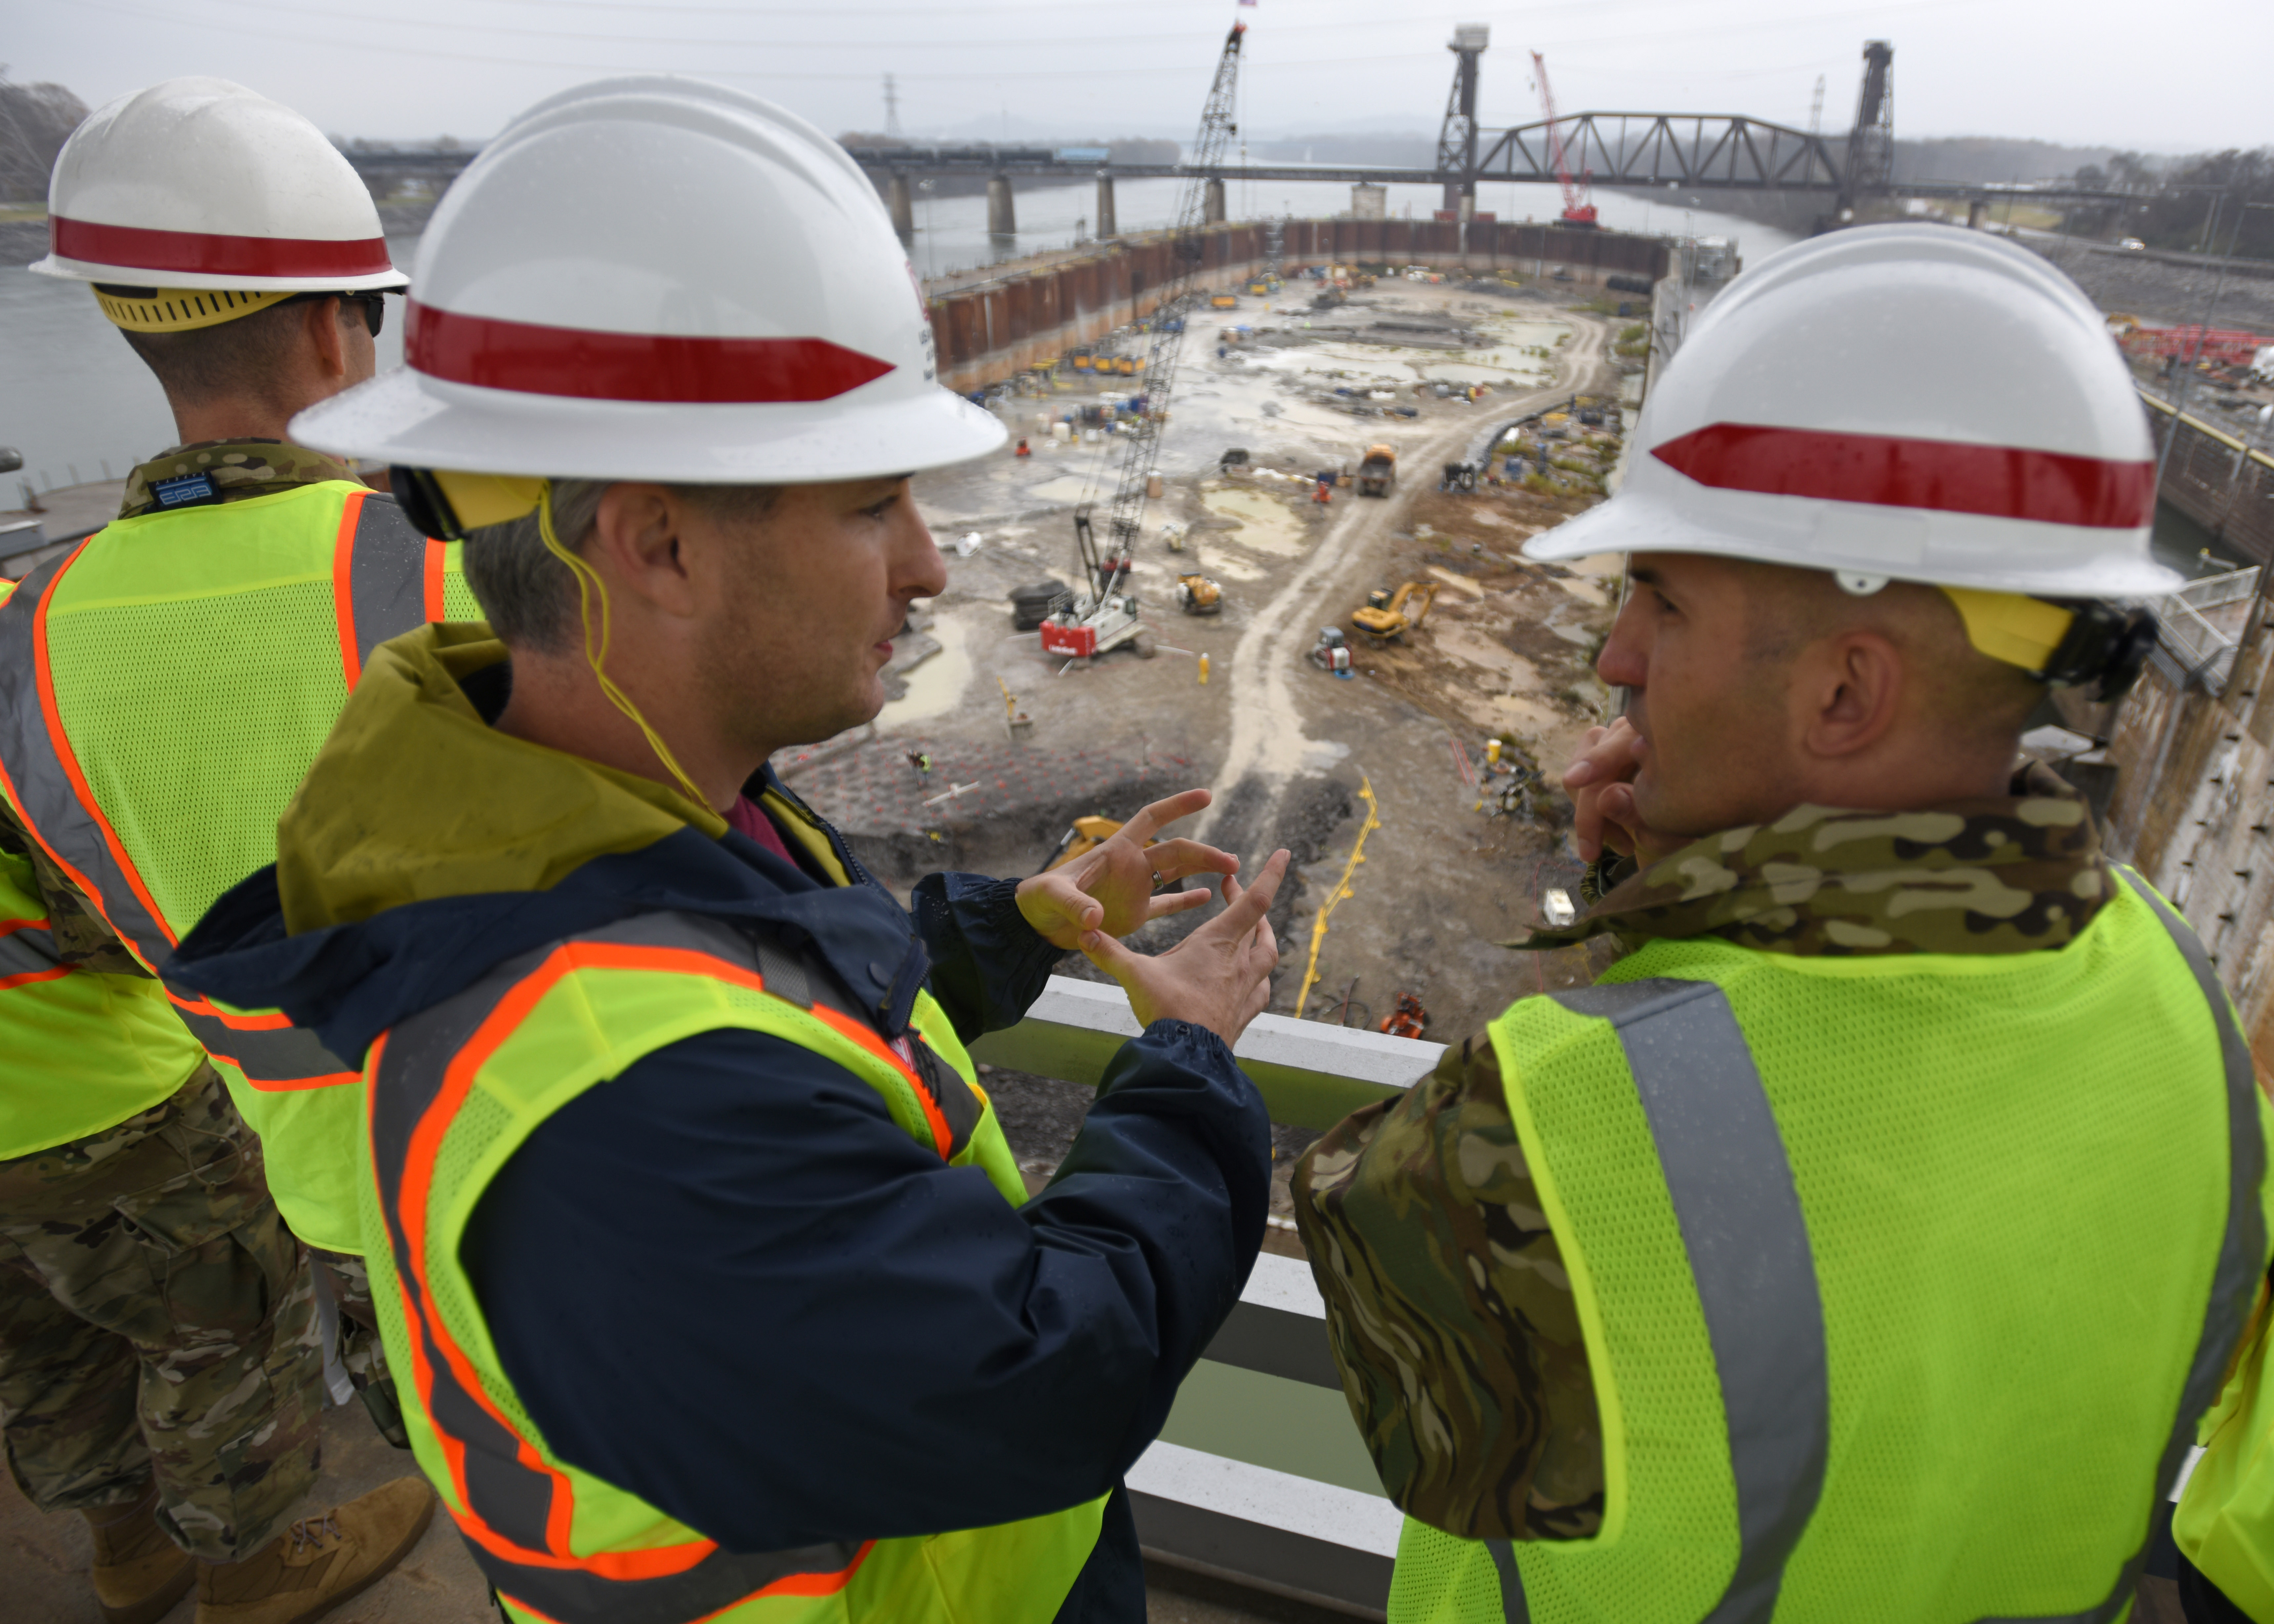 Col. Paul Kremer (Right), U.S. Army Corps of Engineers Great Lakes and Ohio River Division acting commander, gets an update on the Chickamauga Lock Replacement Project from Adam Walker, project manager with the Nashville District, during a visit Dec. 5, 2017 to the construction site at Tennessee River mile 471 in Chattanooga, Tenn. (USACE photo by Lee Roberts)